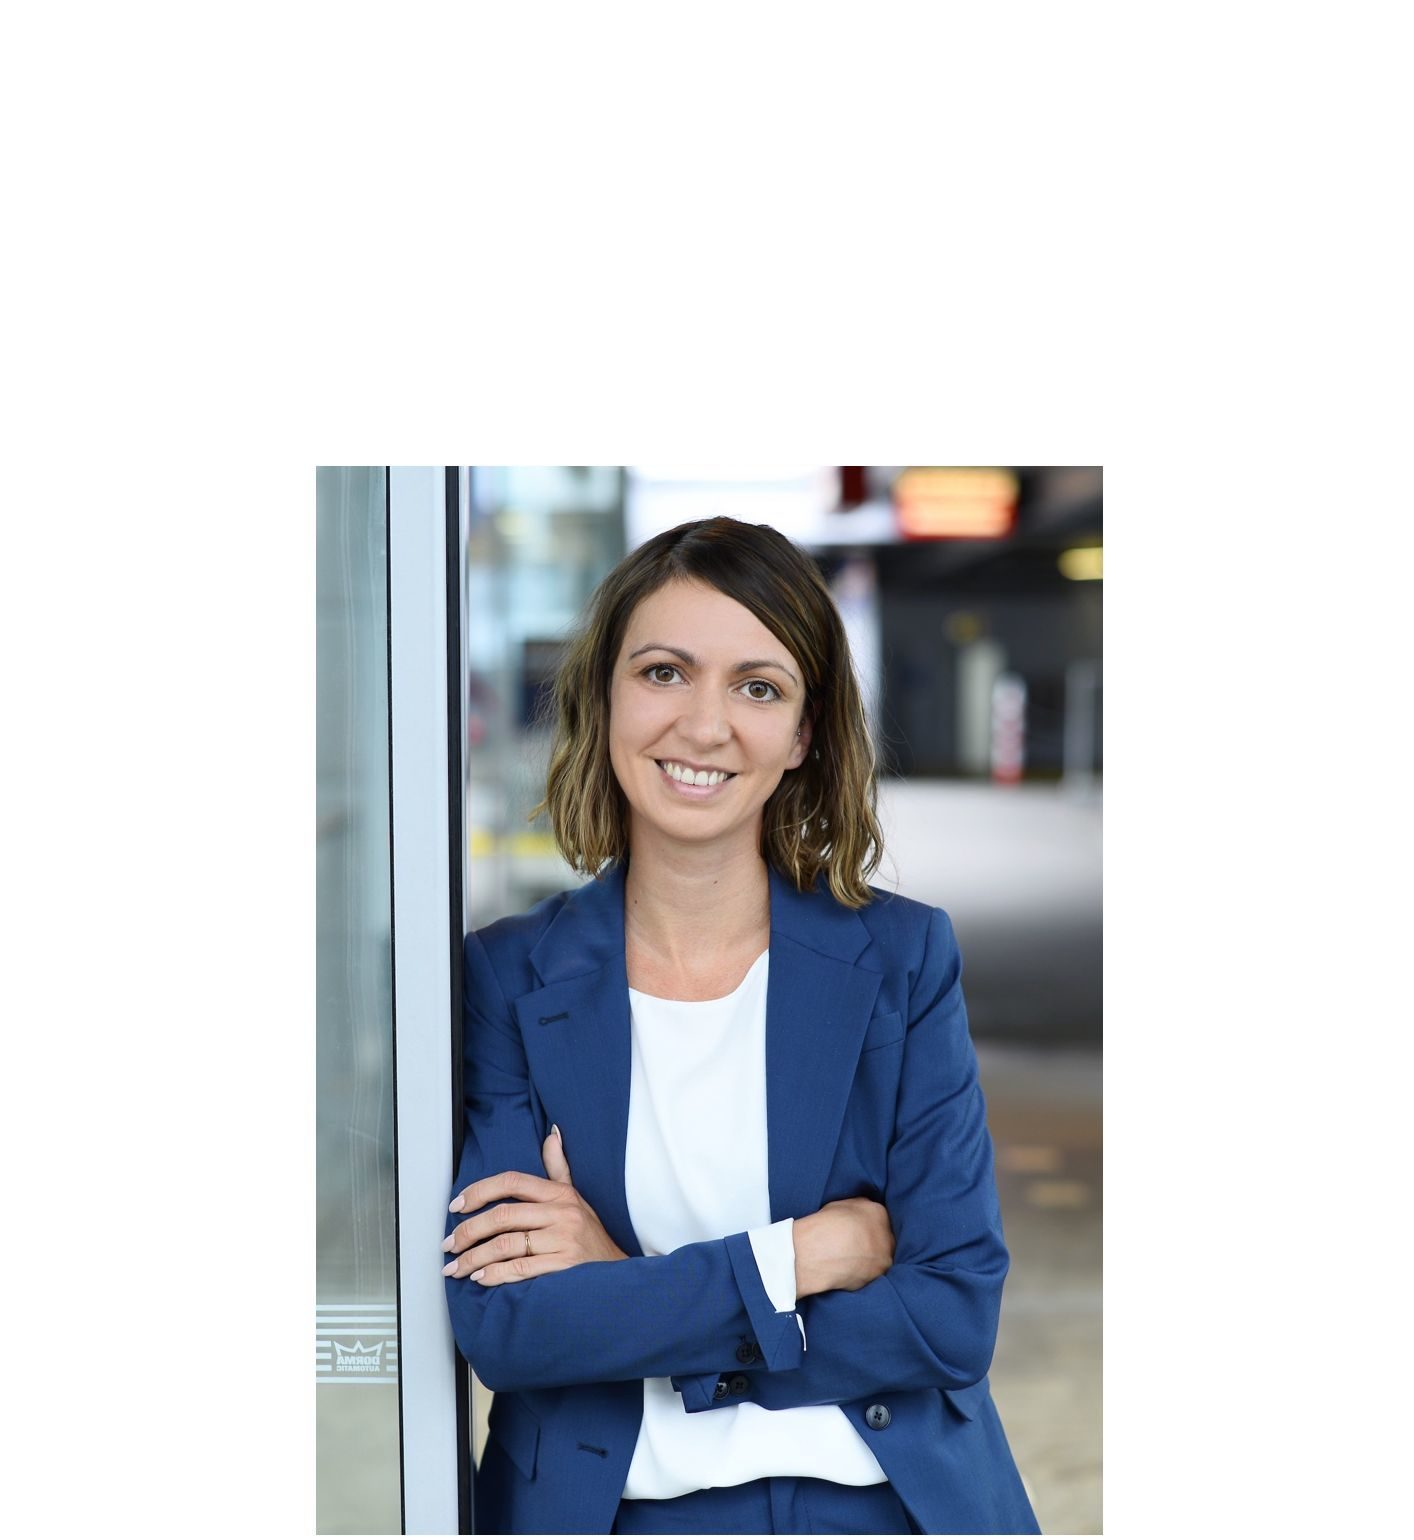 Dr. Annamarija Raic | Research & Development Manager